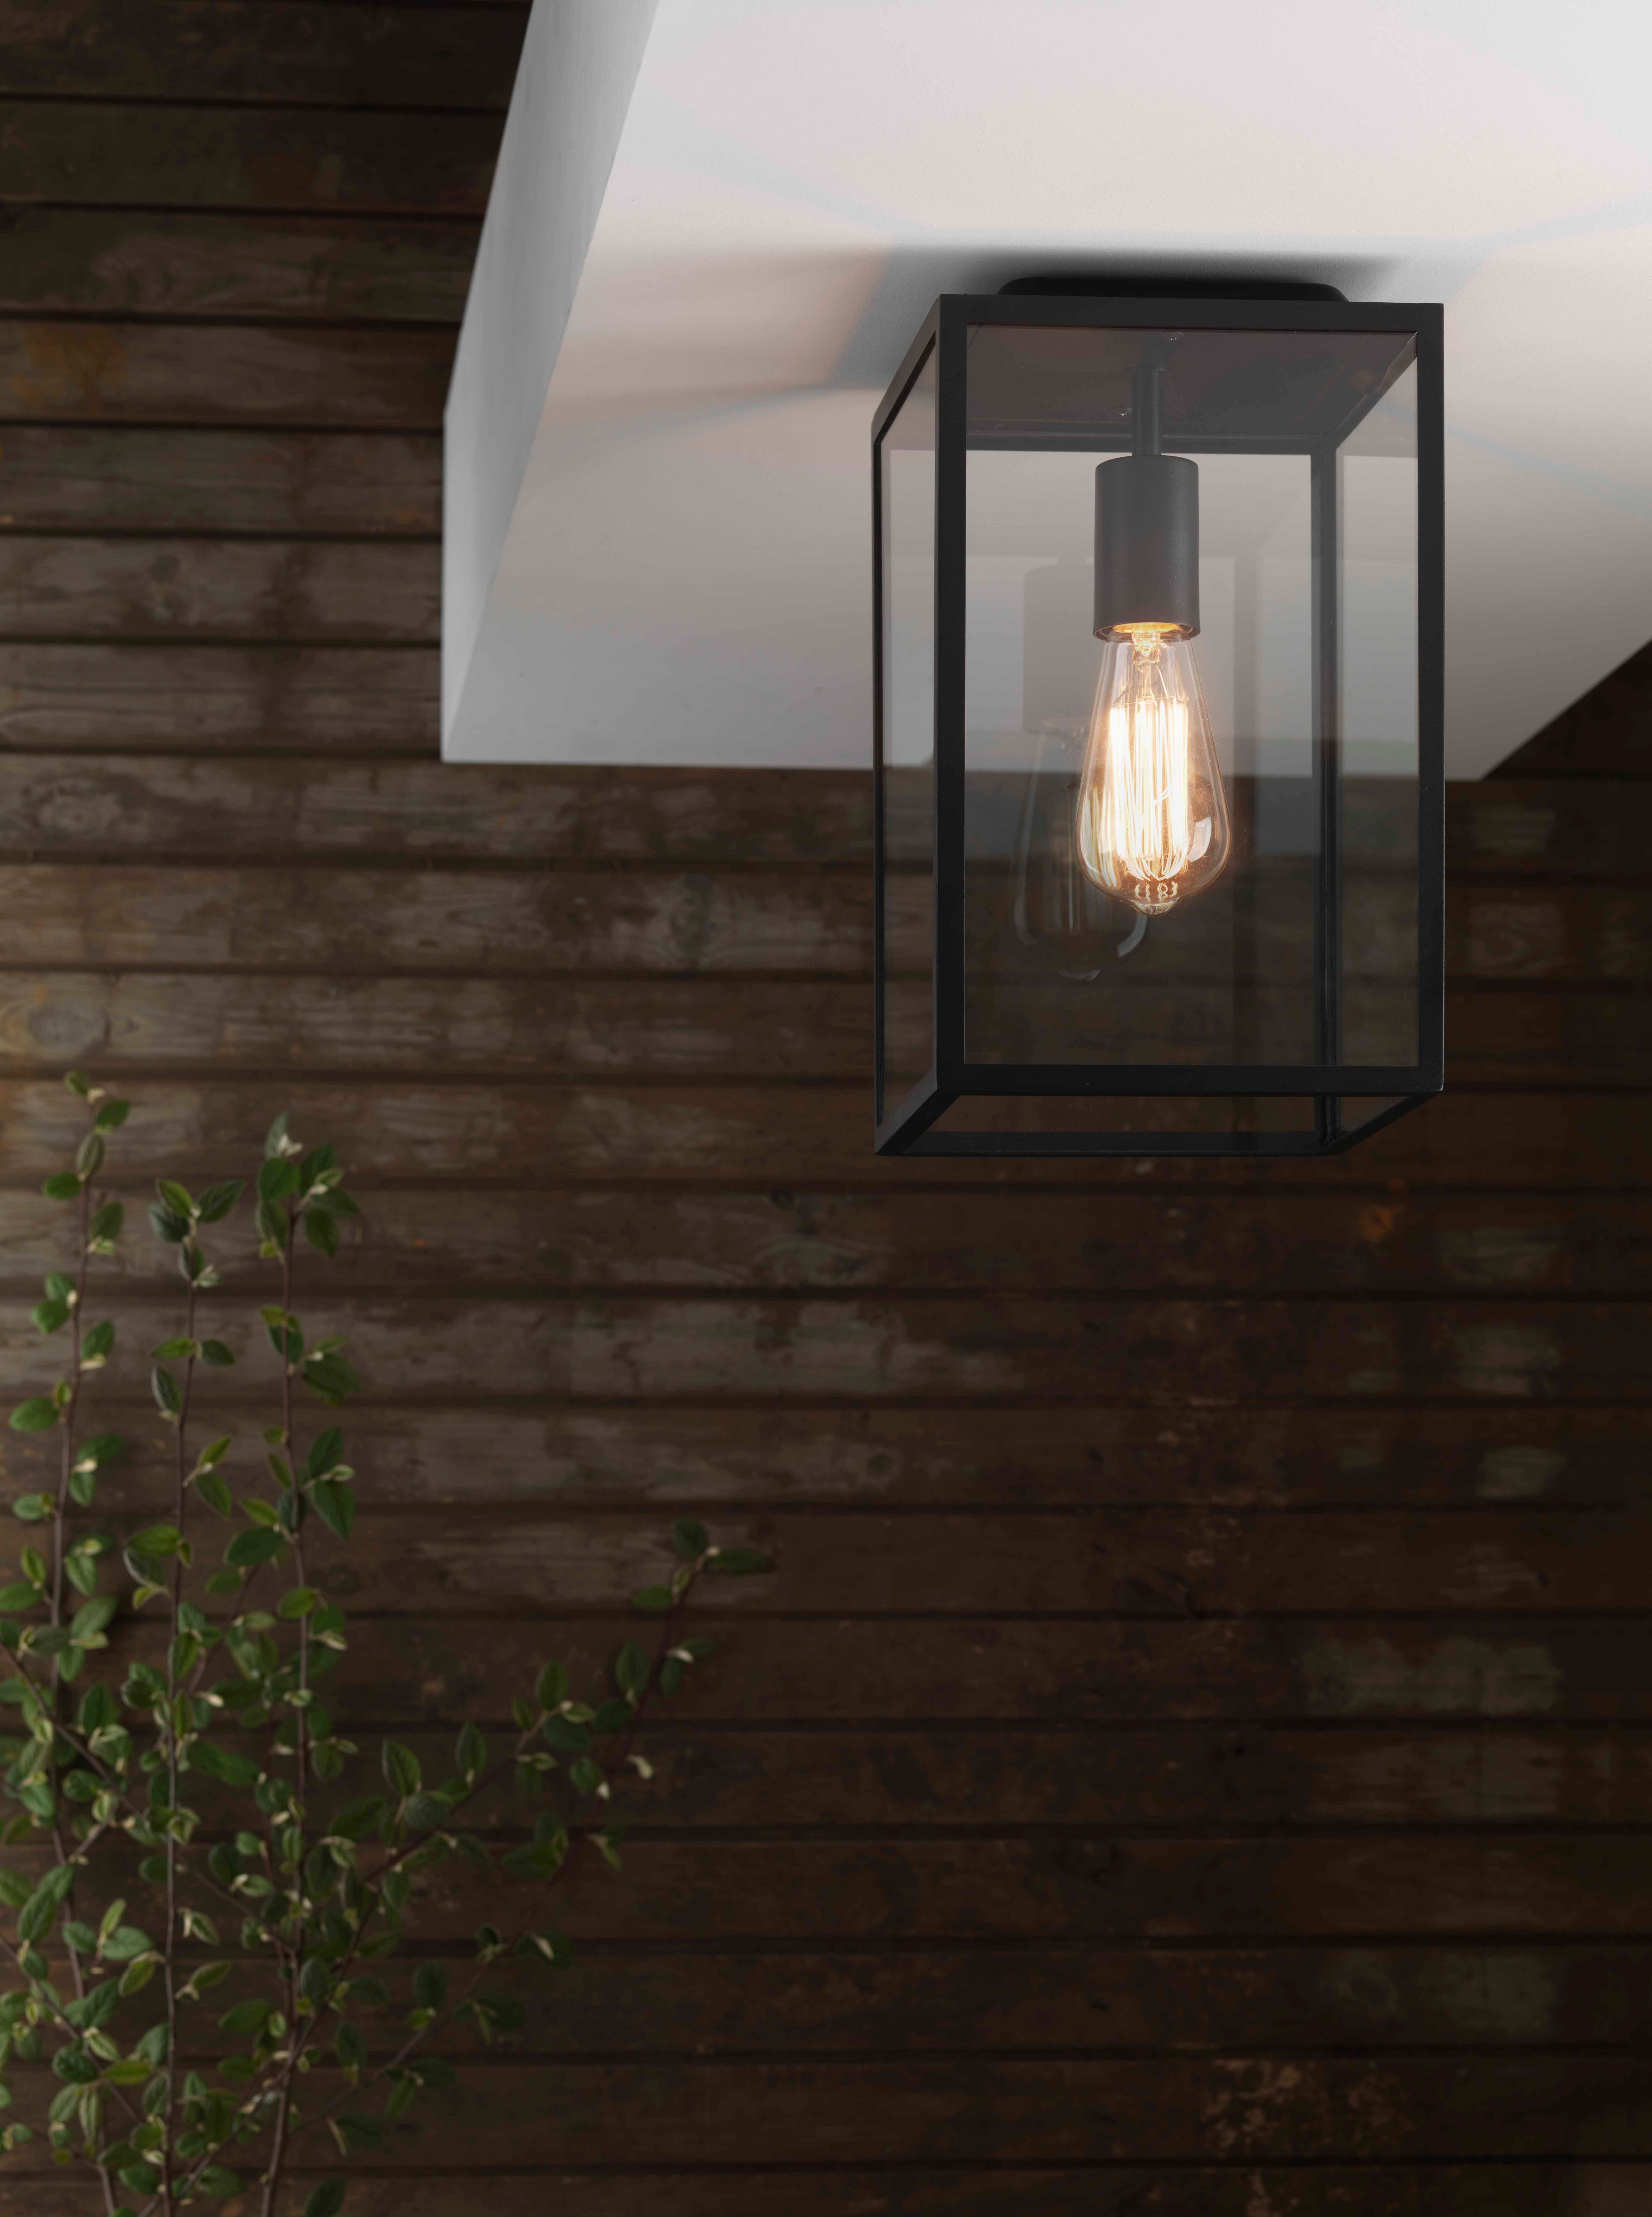 The Homefield Exterior Wall Light By Astro Lighting Ceiling Lights Exterior Wall Light Flush Ceiling Lights